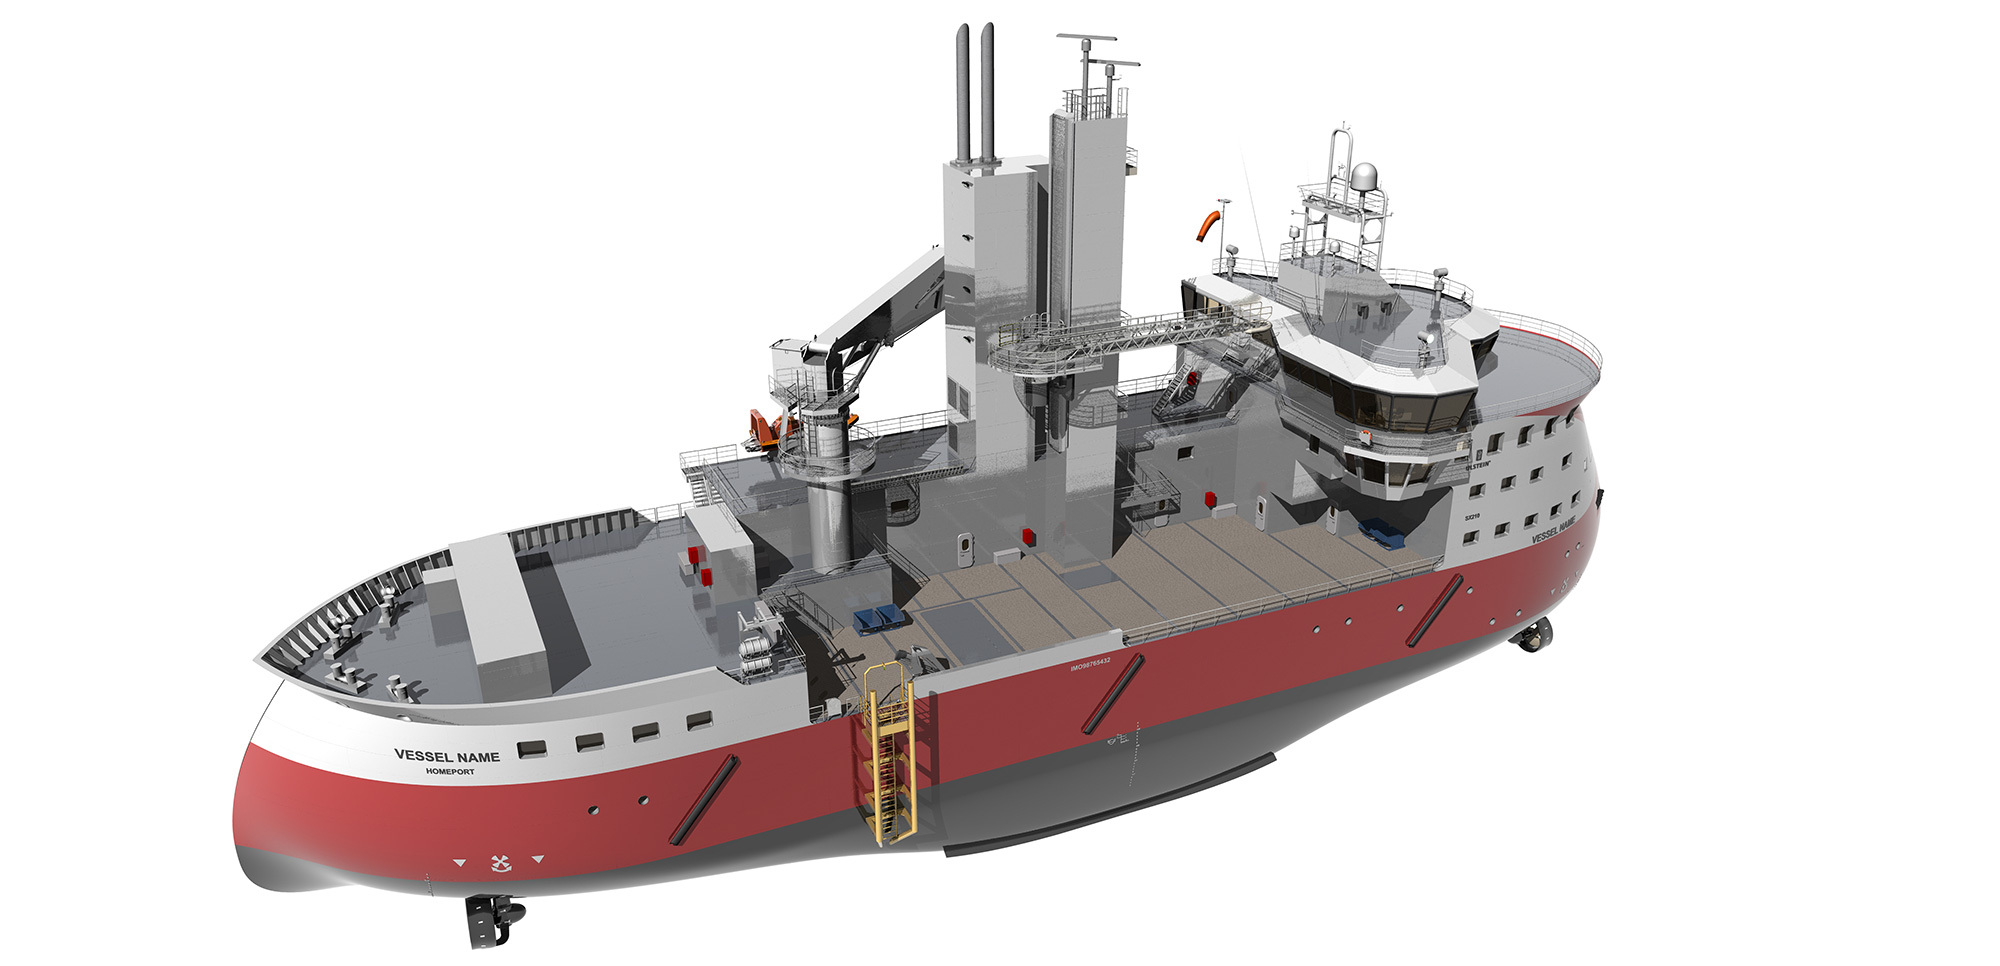 Ulstein's SX210 design for service and maintenance of offshore wind turbines incorporates the TWIN X-STERN™ hull design.